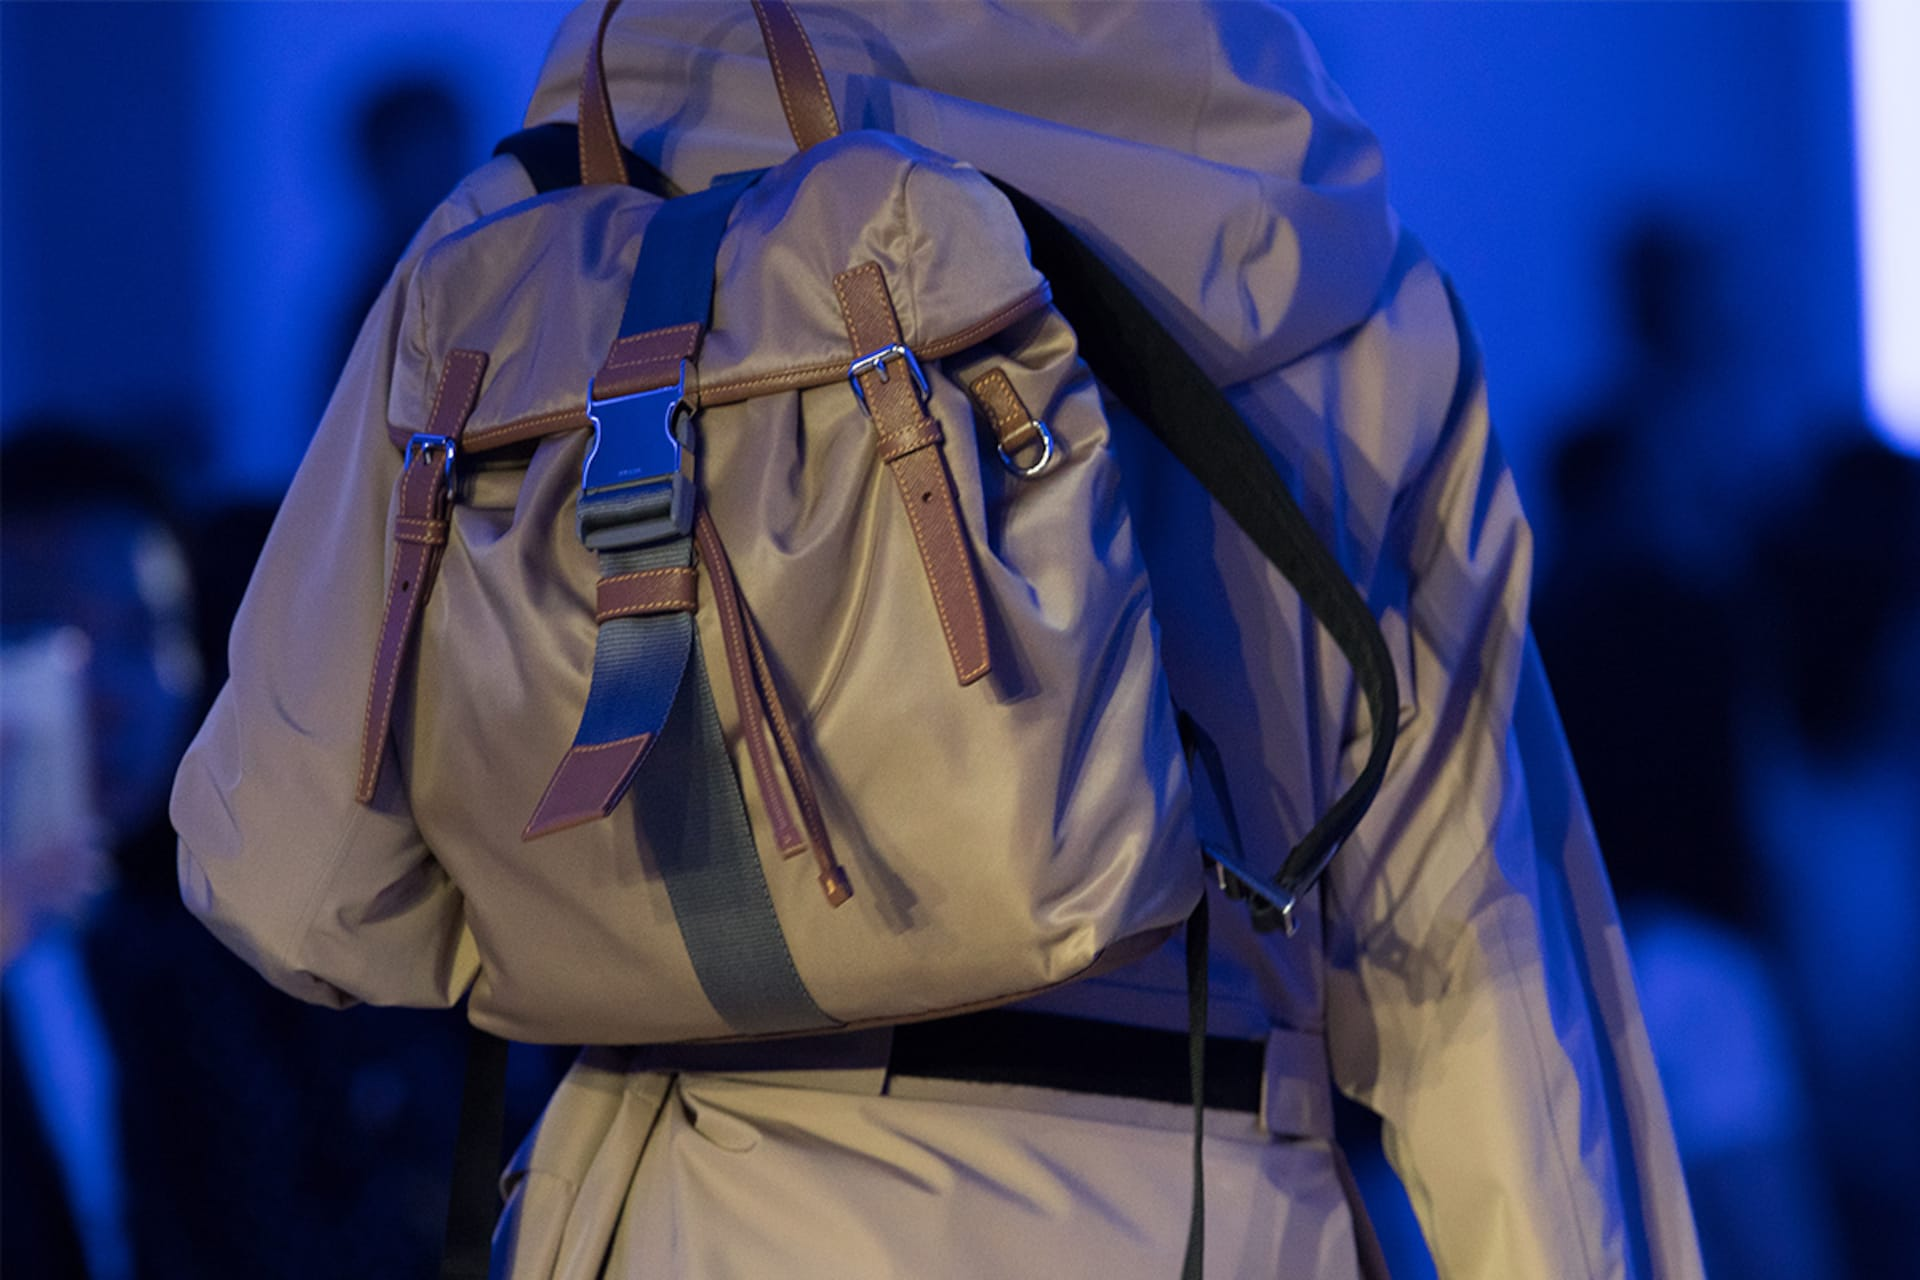 Prada Spring Summer 2020 Menswear fashion show backpack